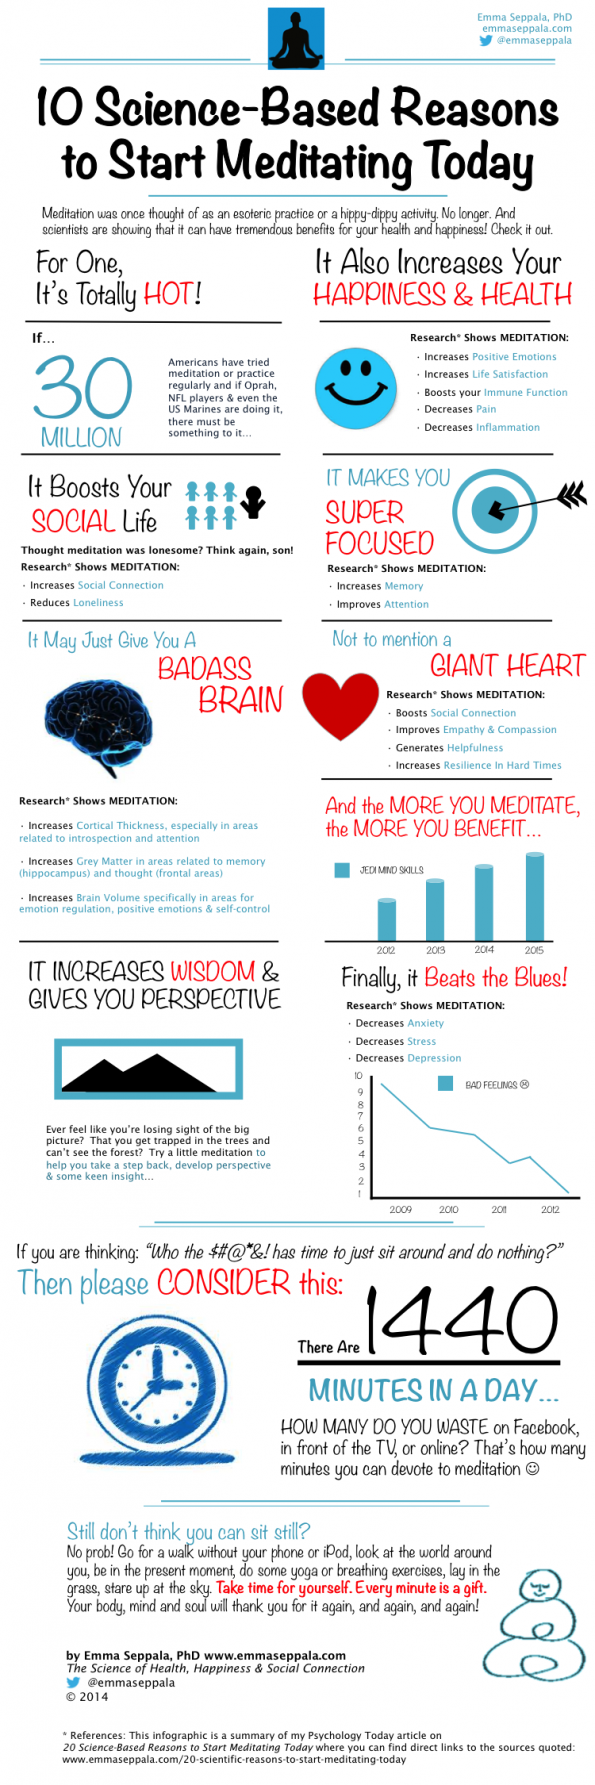 meditation infographic from https://emmaseppala.com/10-science-based-reasons-start-meditating-today-infographic/#.WjzOfVSFhrw